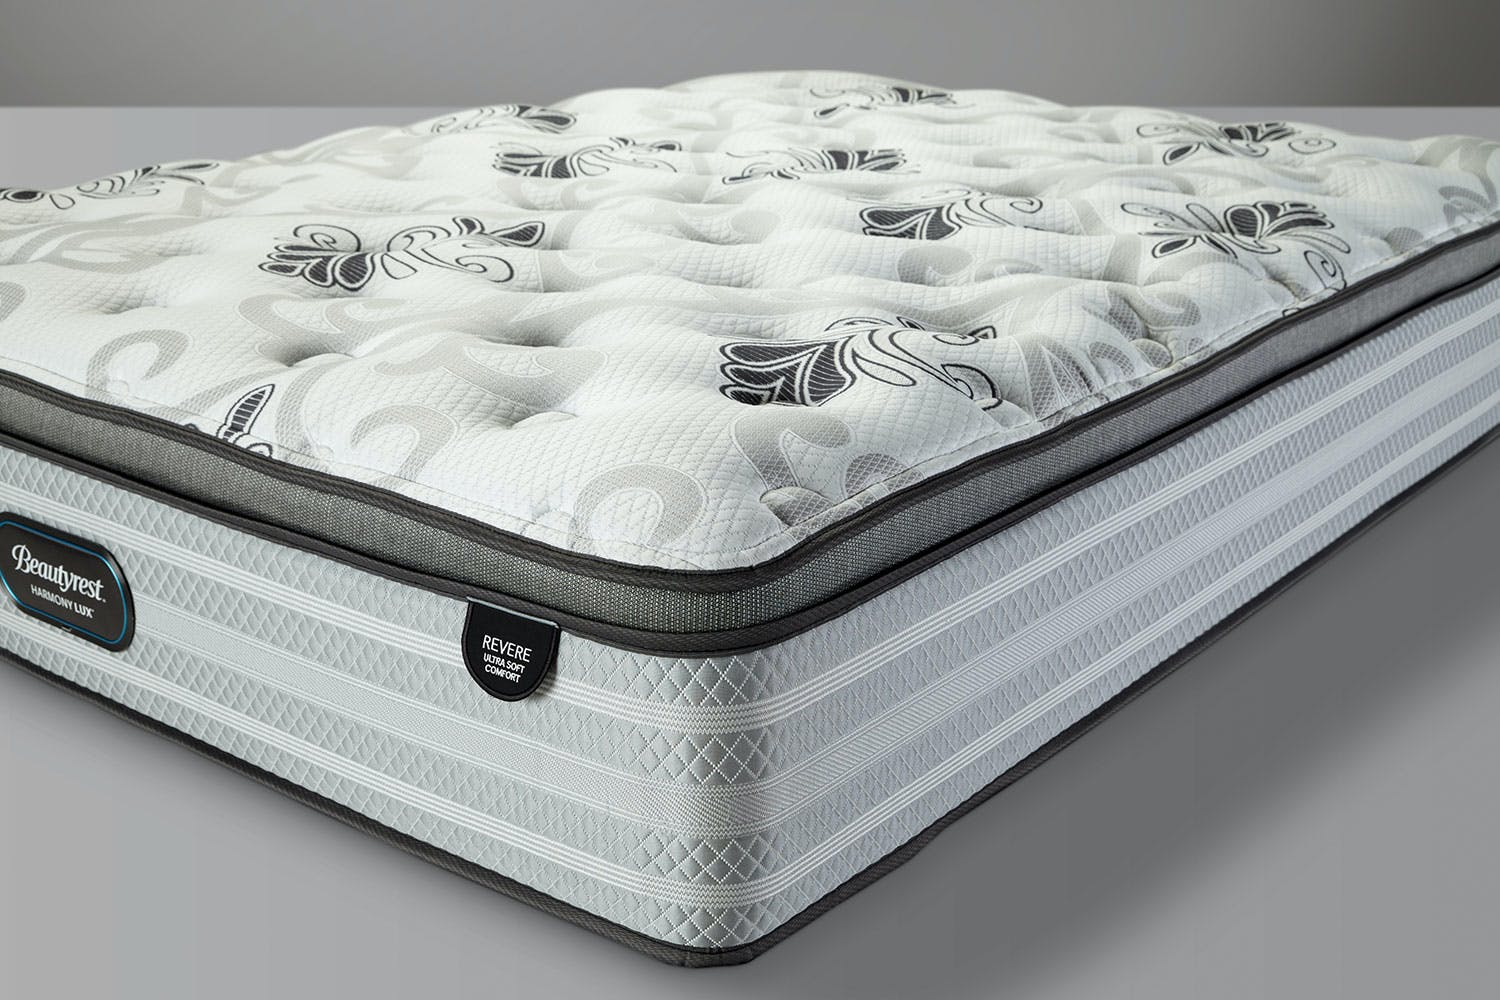 Revere Extra Soft Super King Mattress by Beautyrest